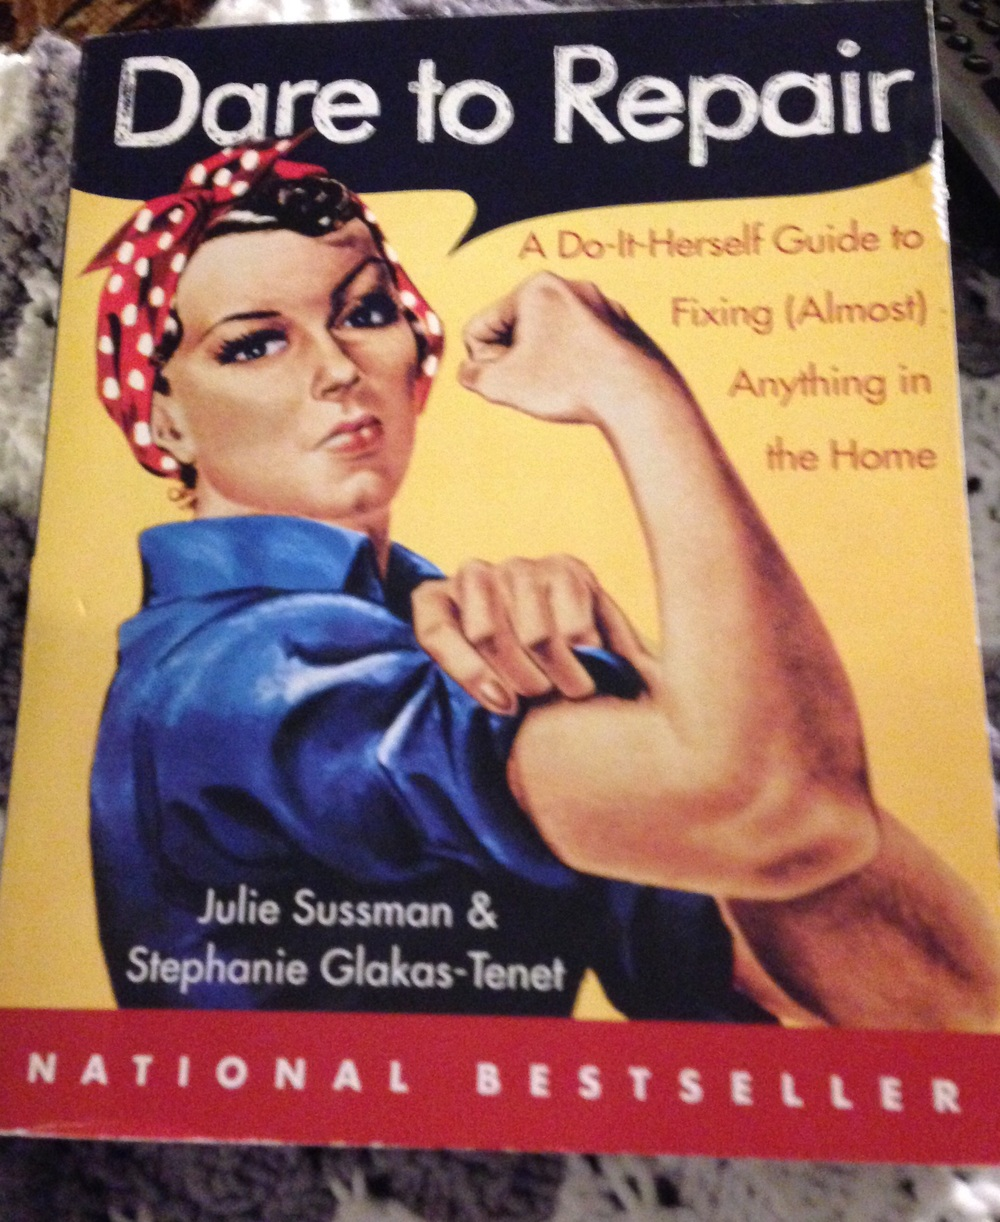 A great book for any self respecting woman to learn basic home repair.